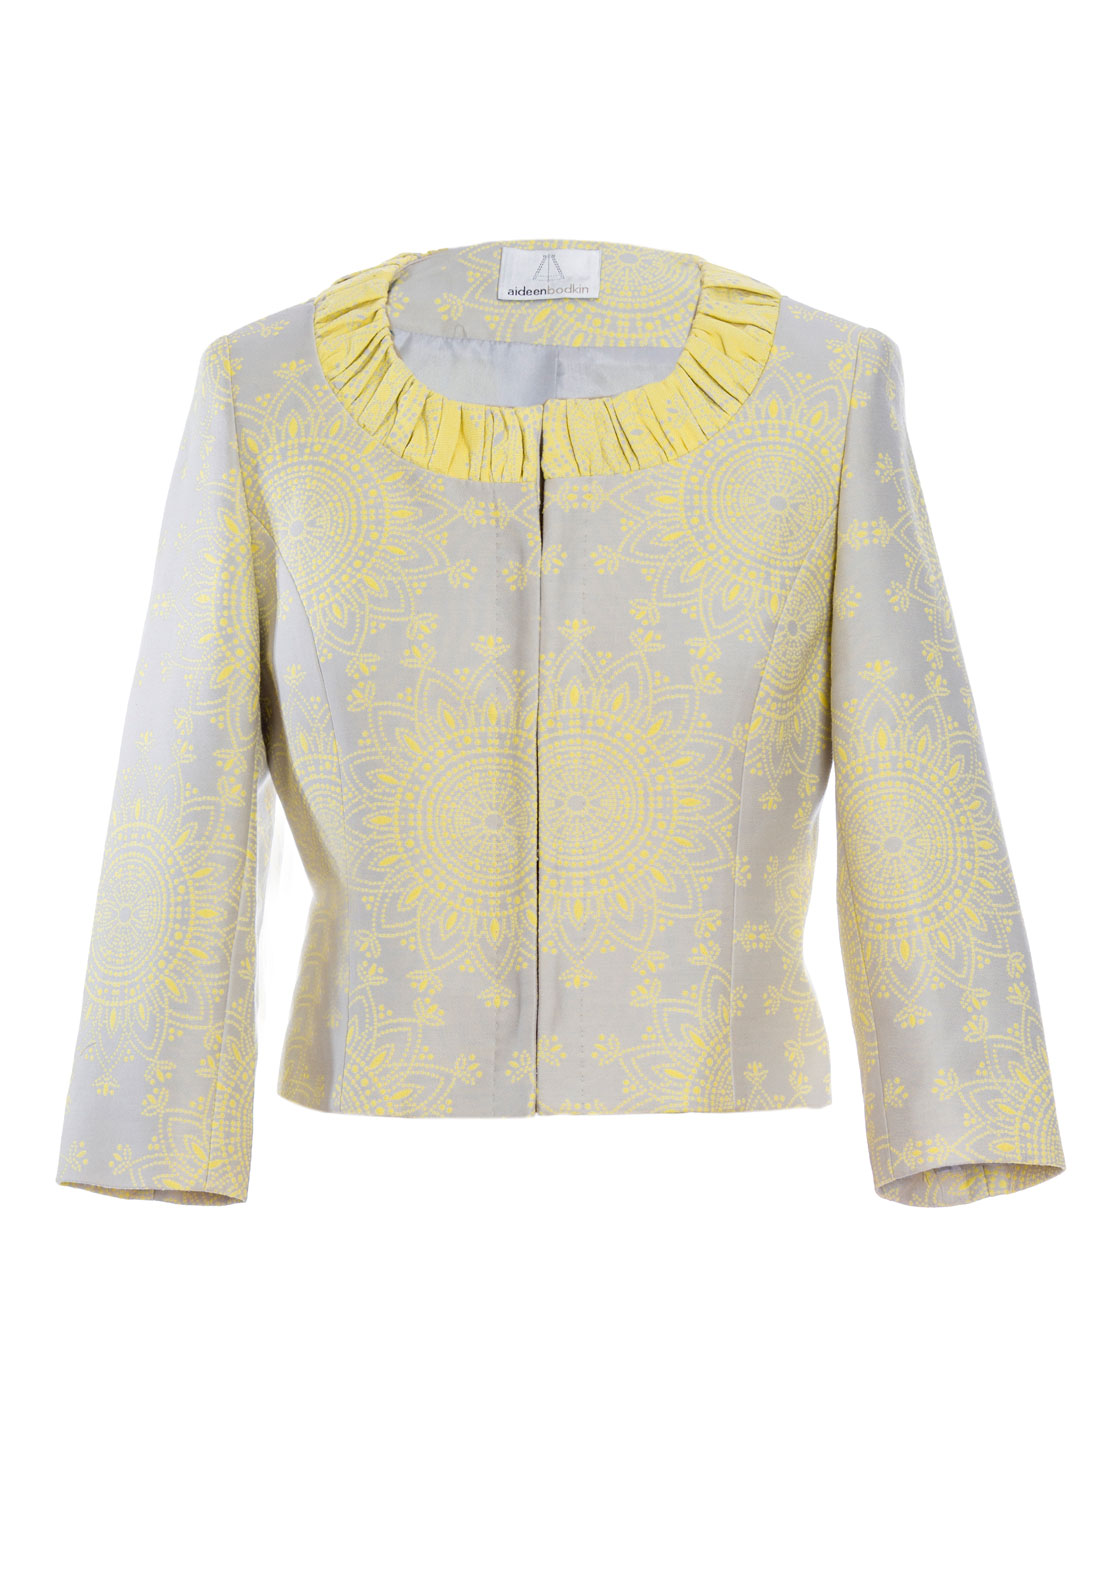 Aideen Bodkin Lotus Floral Jacket, Yellow